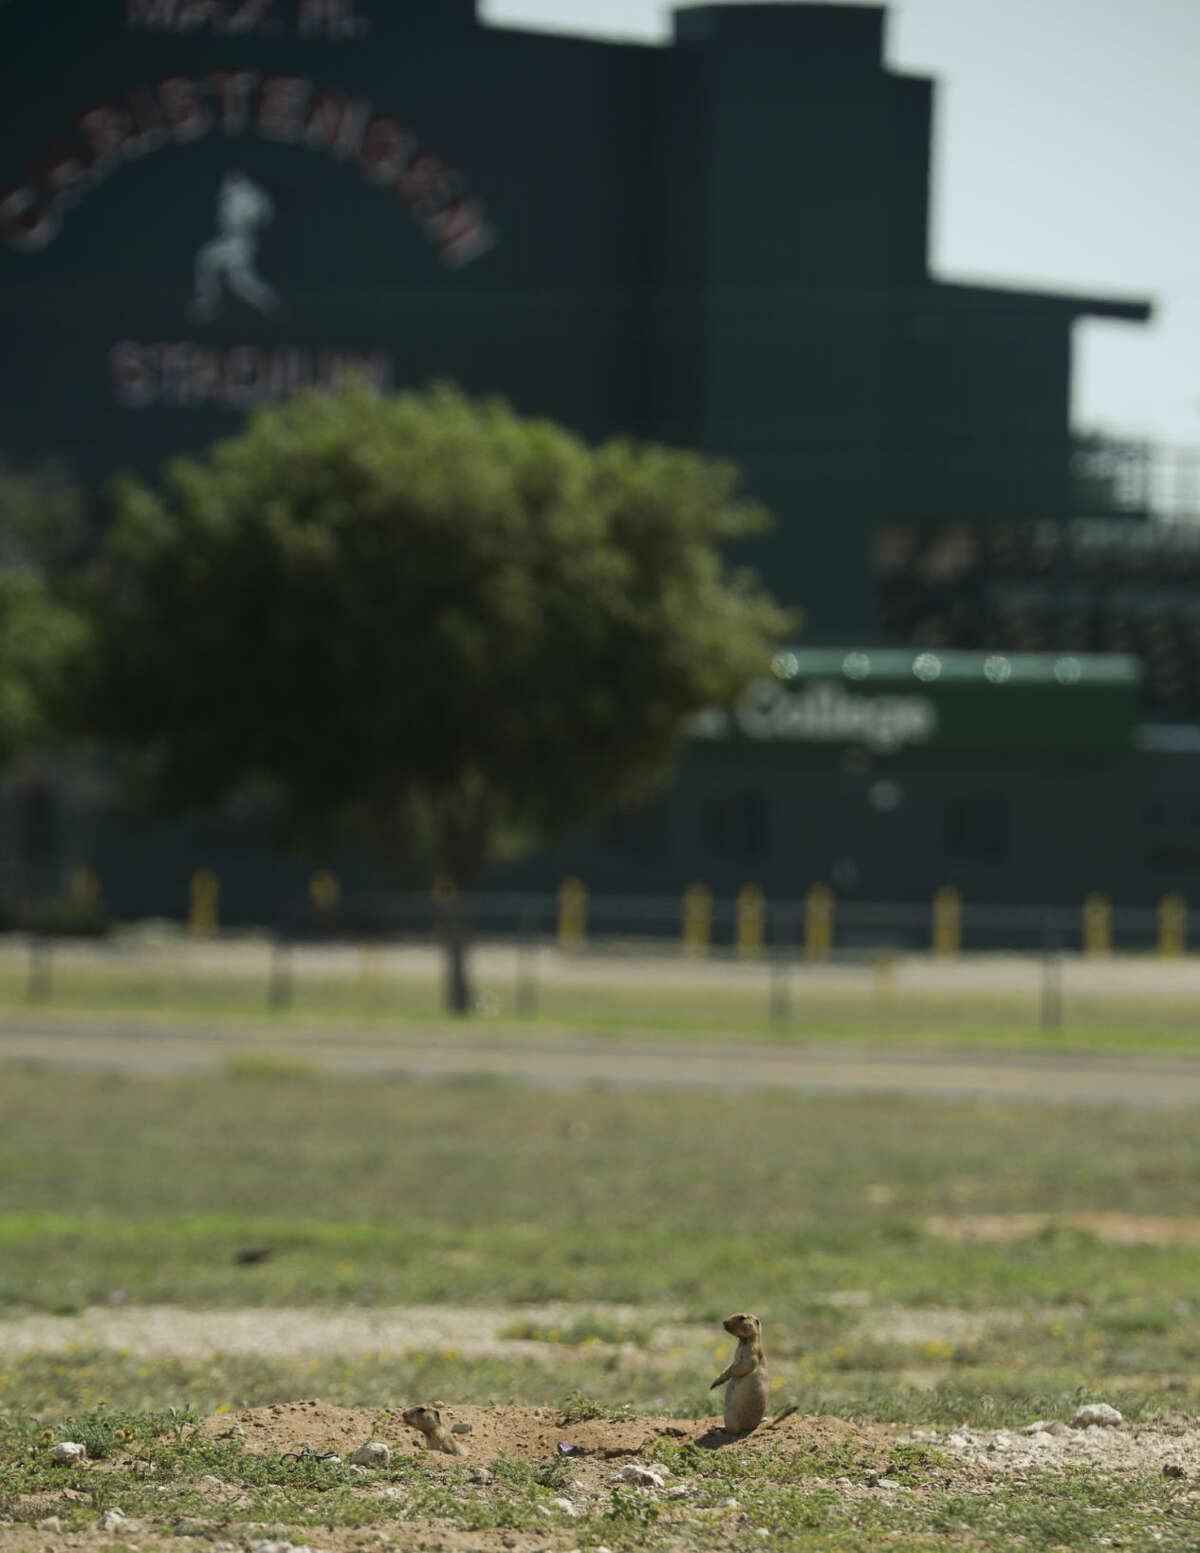 The City of Midland has plans to plug the burrows of hundreds of prairie dogs in the field at Lamesa Road and Loop 250, Monday, 6-29-15, to allow parking for the July 4th festivities in Hogan Park. Tim Fischer\Reporter-Telegram